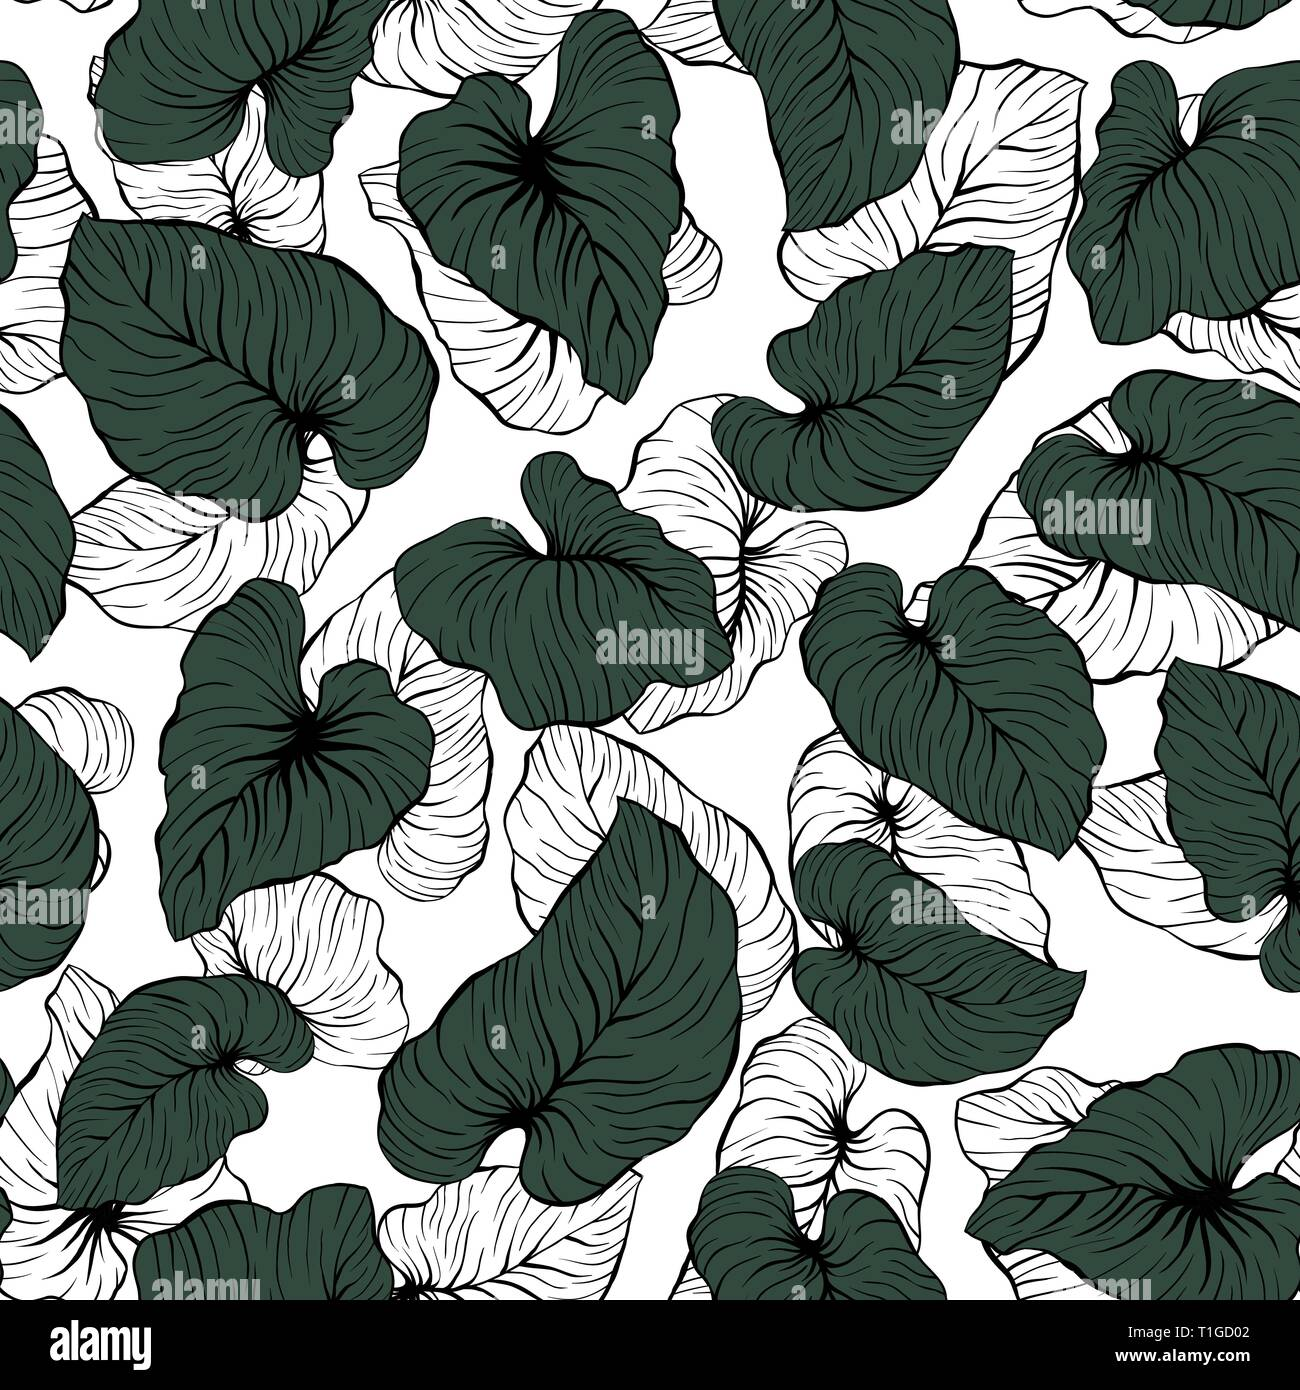 Falling Contrast Outline and Dark Green Palm Leaves Seamless Vector Pattern - Stock Vector